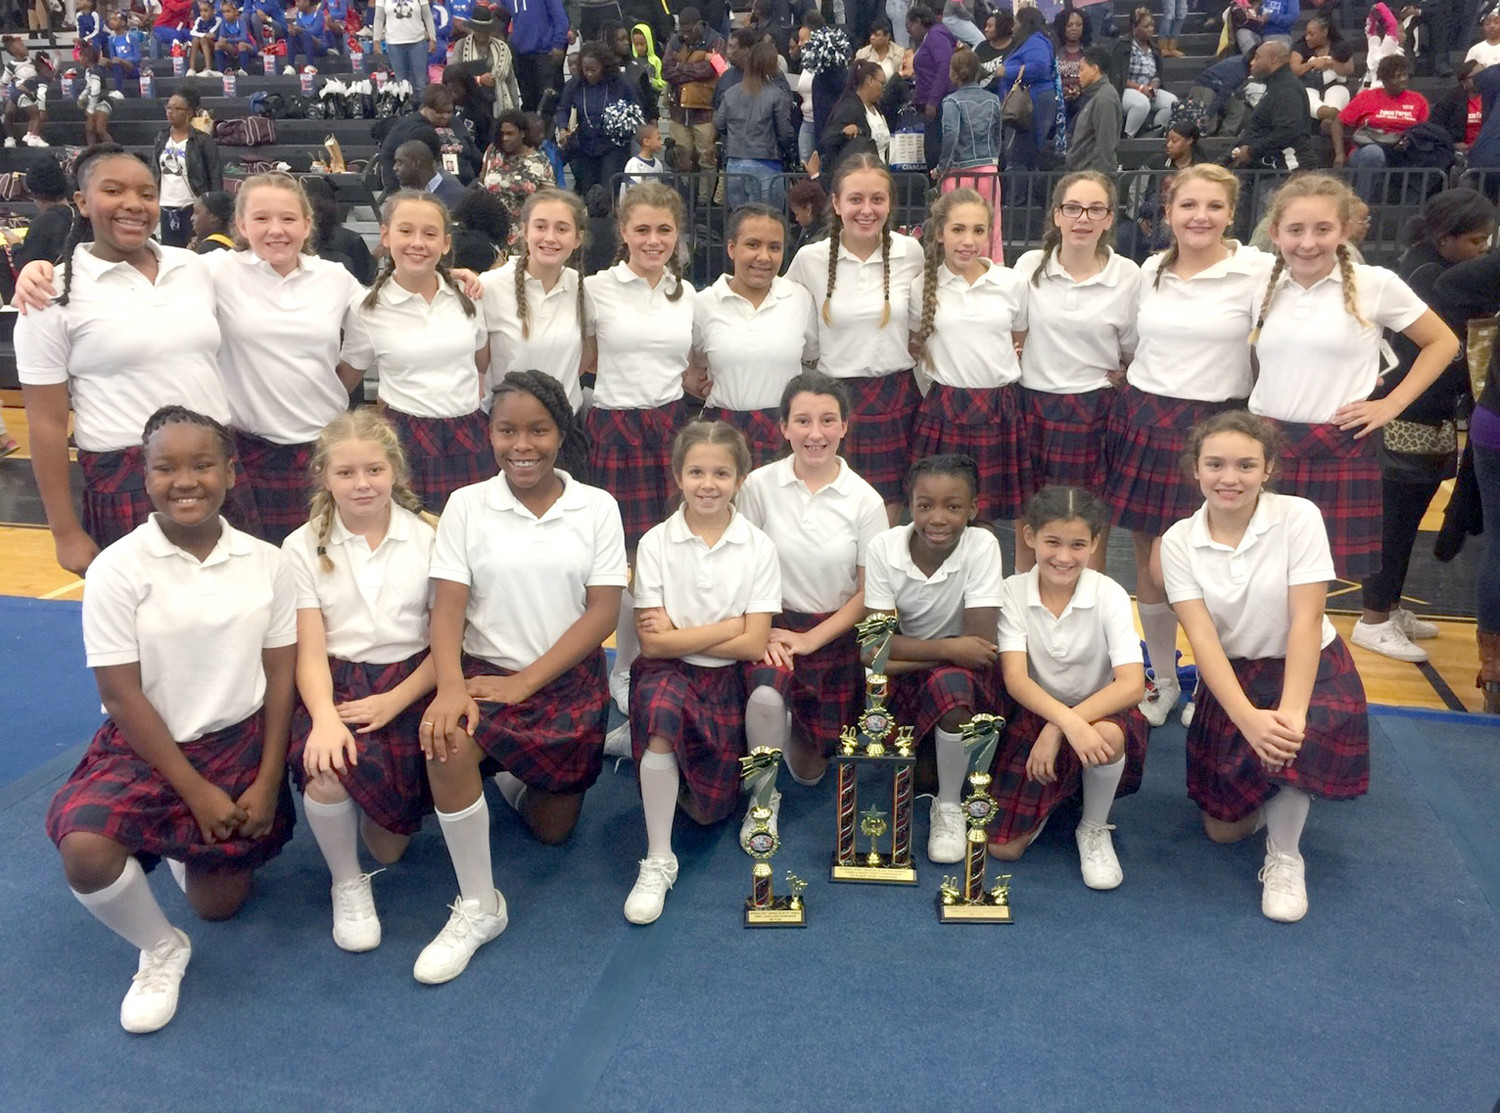 CLEVELAND MIDDLE SCHOOL'S dance team found success in their recent competition in Atlanta. The team won three awards, including a first-place one.